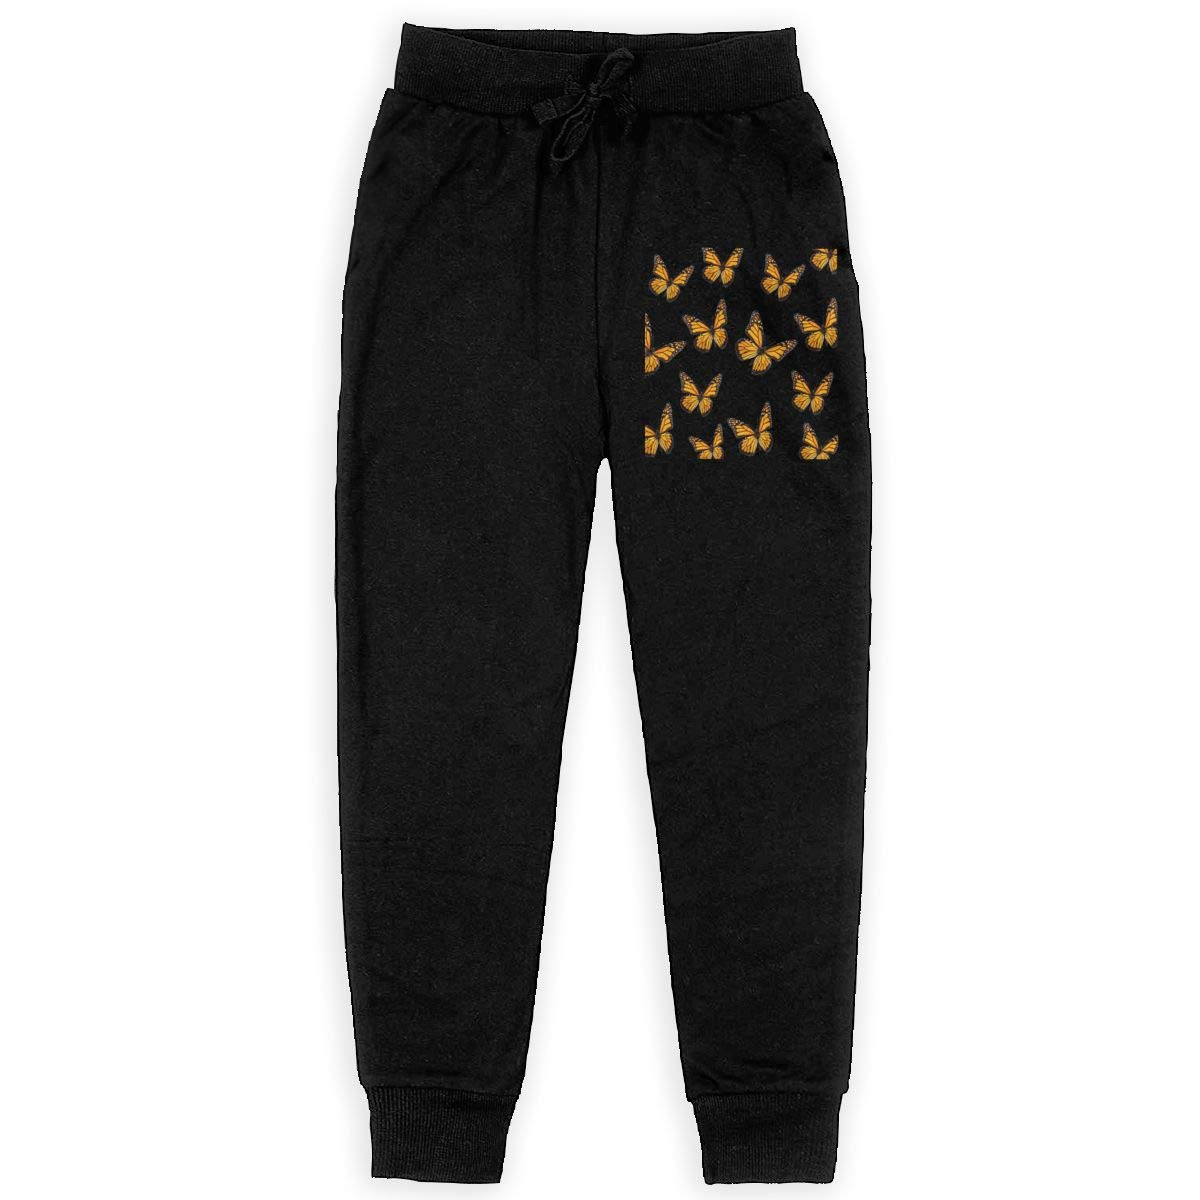 Boys Sweatpants Butterfly Flying Joggers Sport Training Pants Trousers Black L